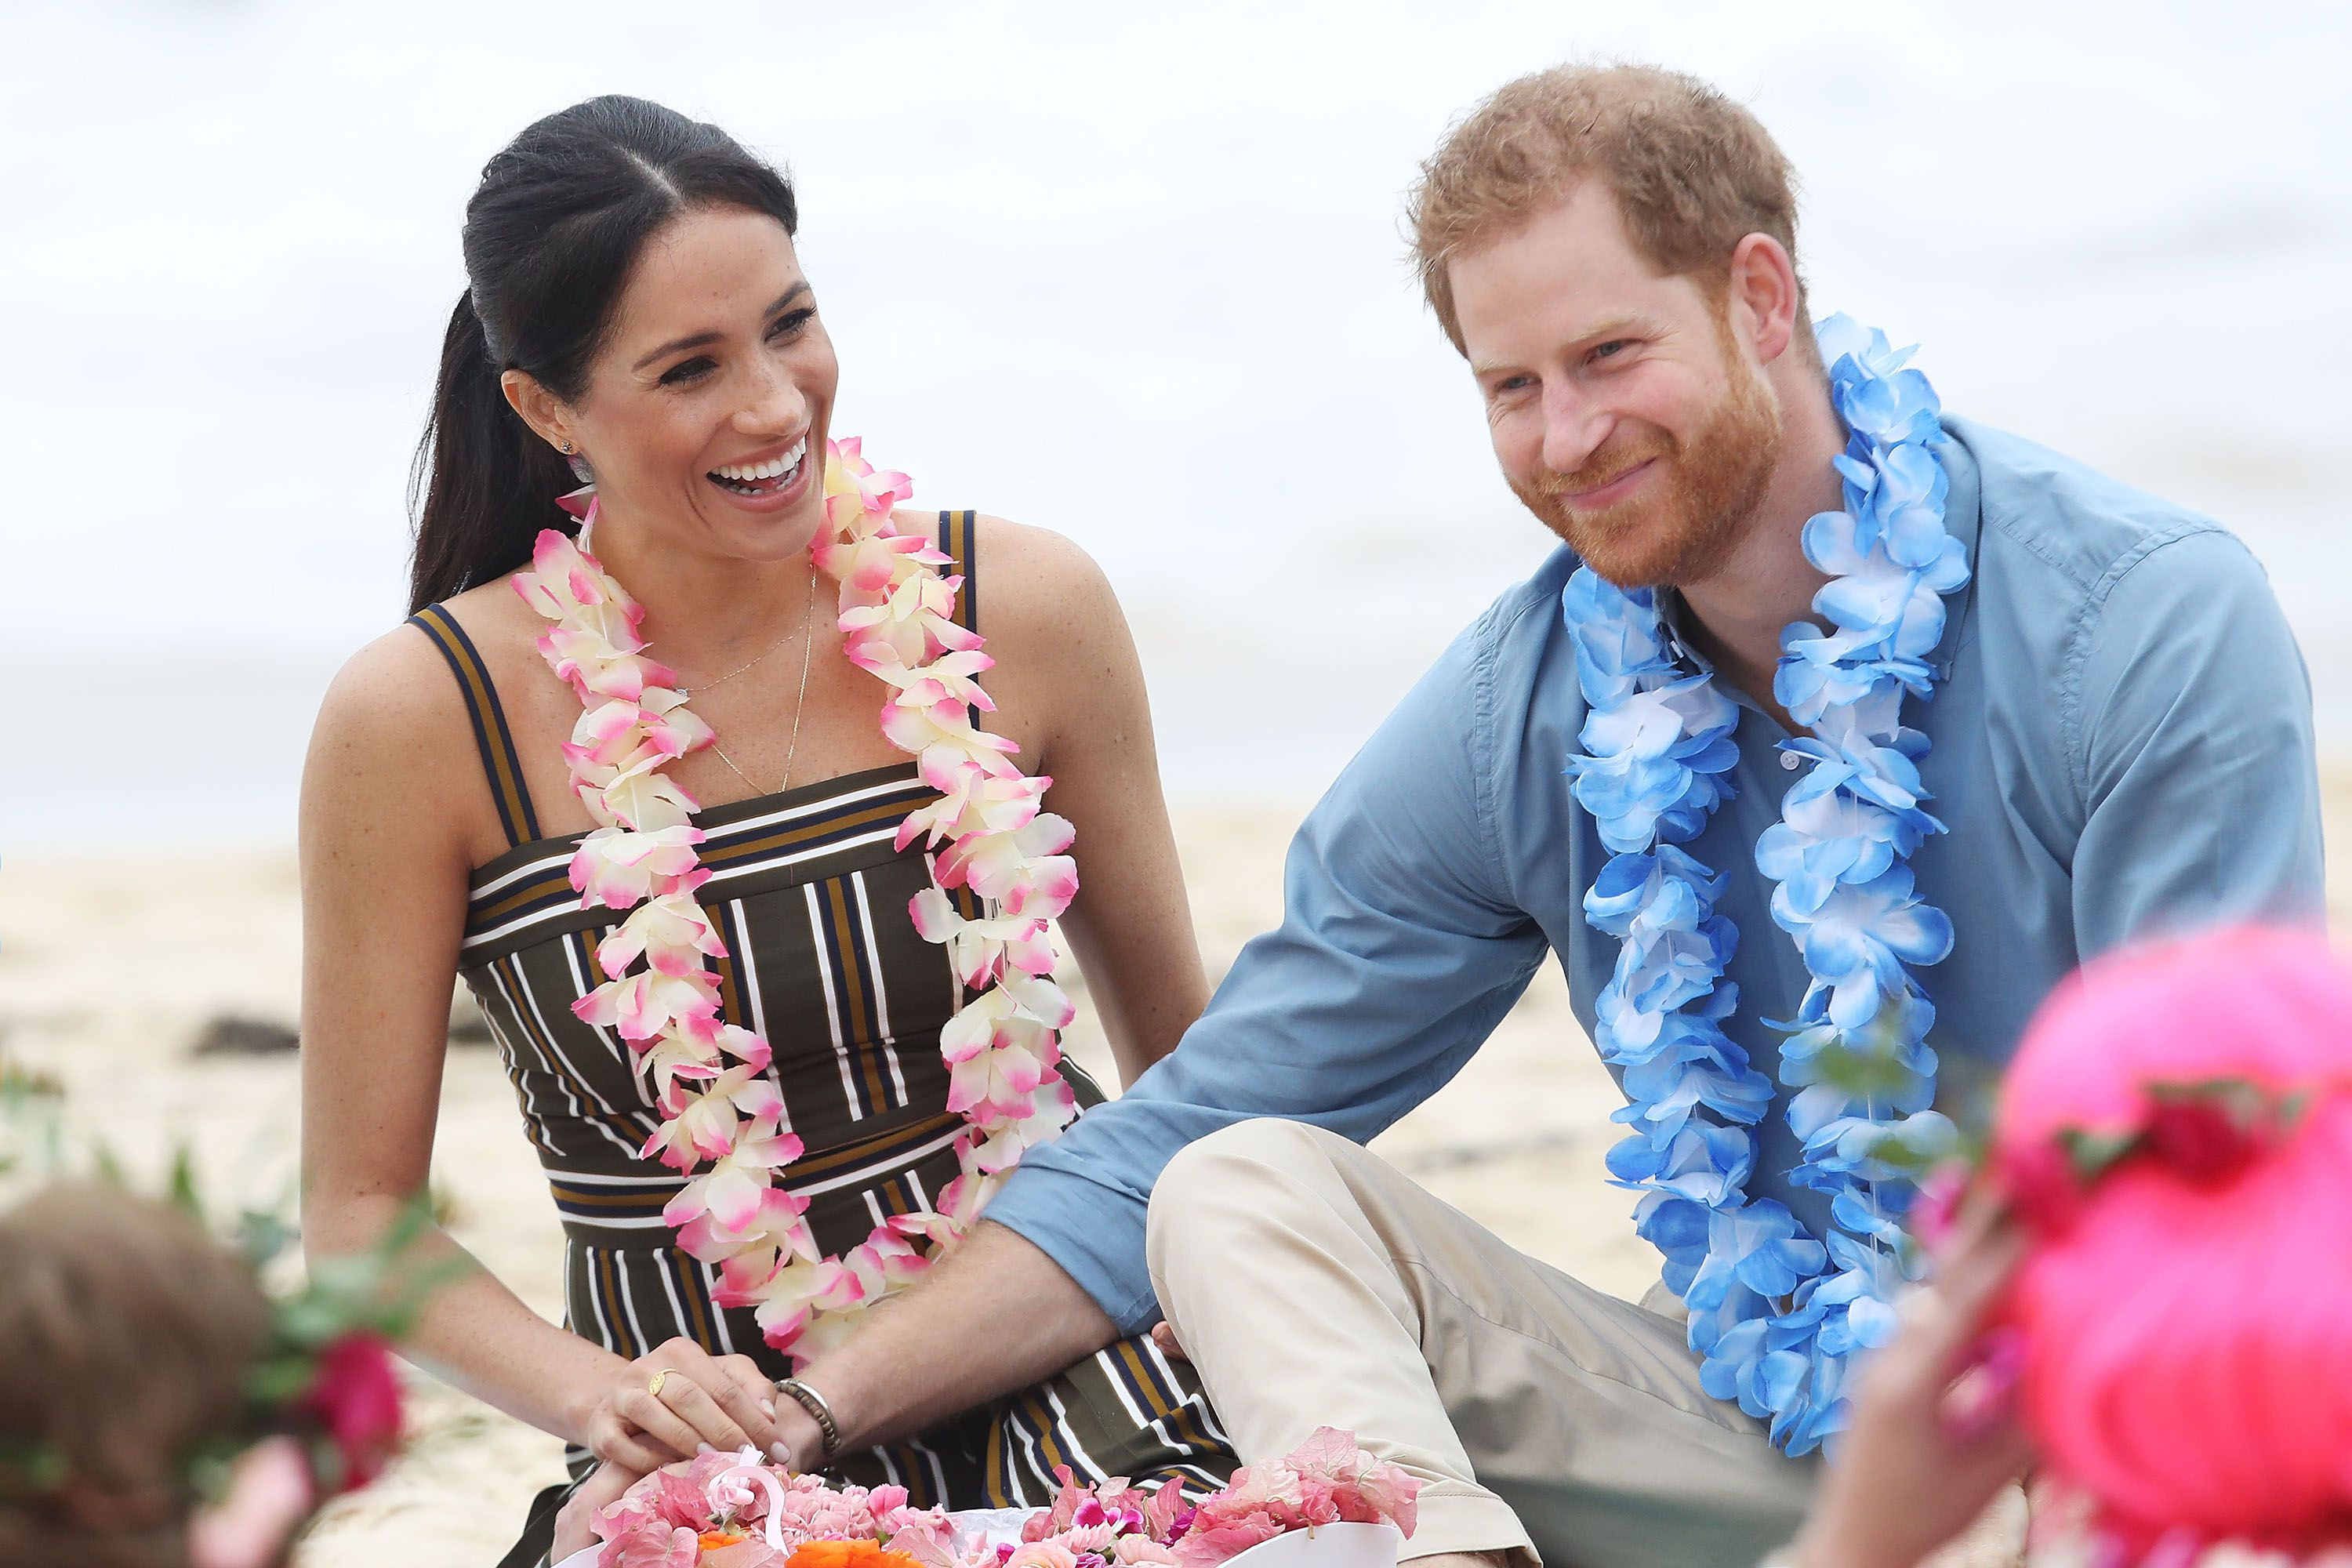 SHOP MEGHAN'S FAVORITES ON SALE | MEMORIAL WEEKEND SALE ROUNDUP